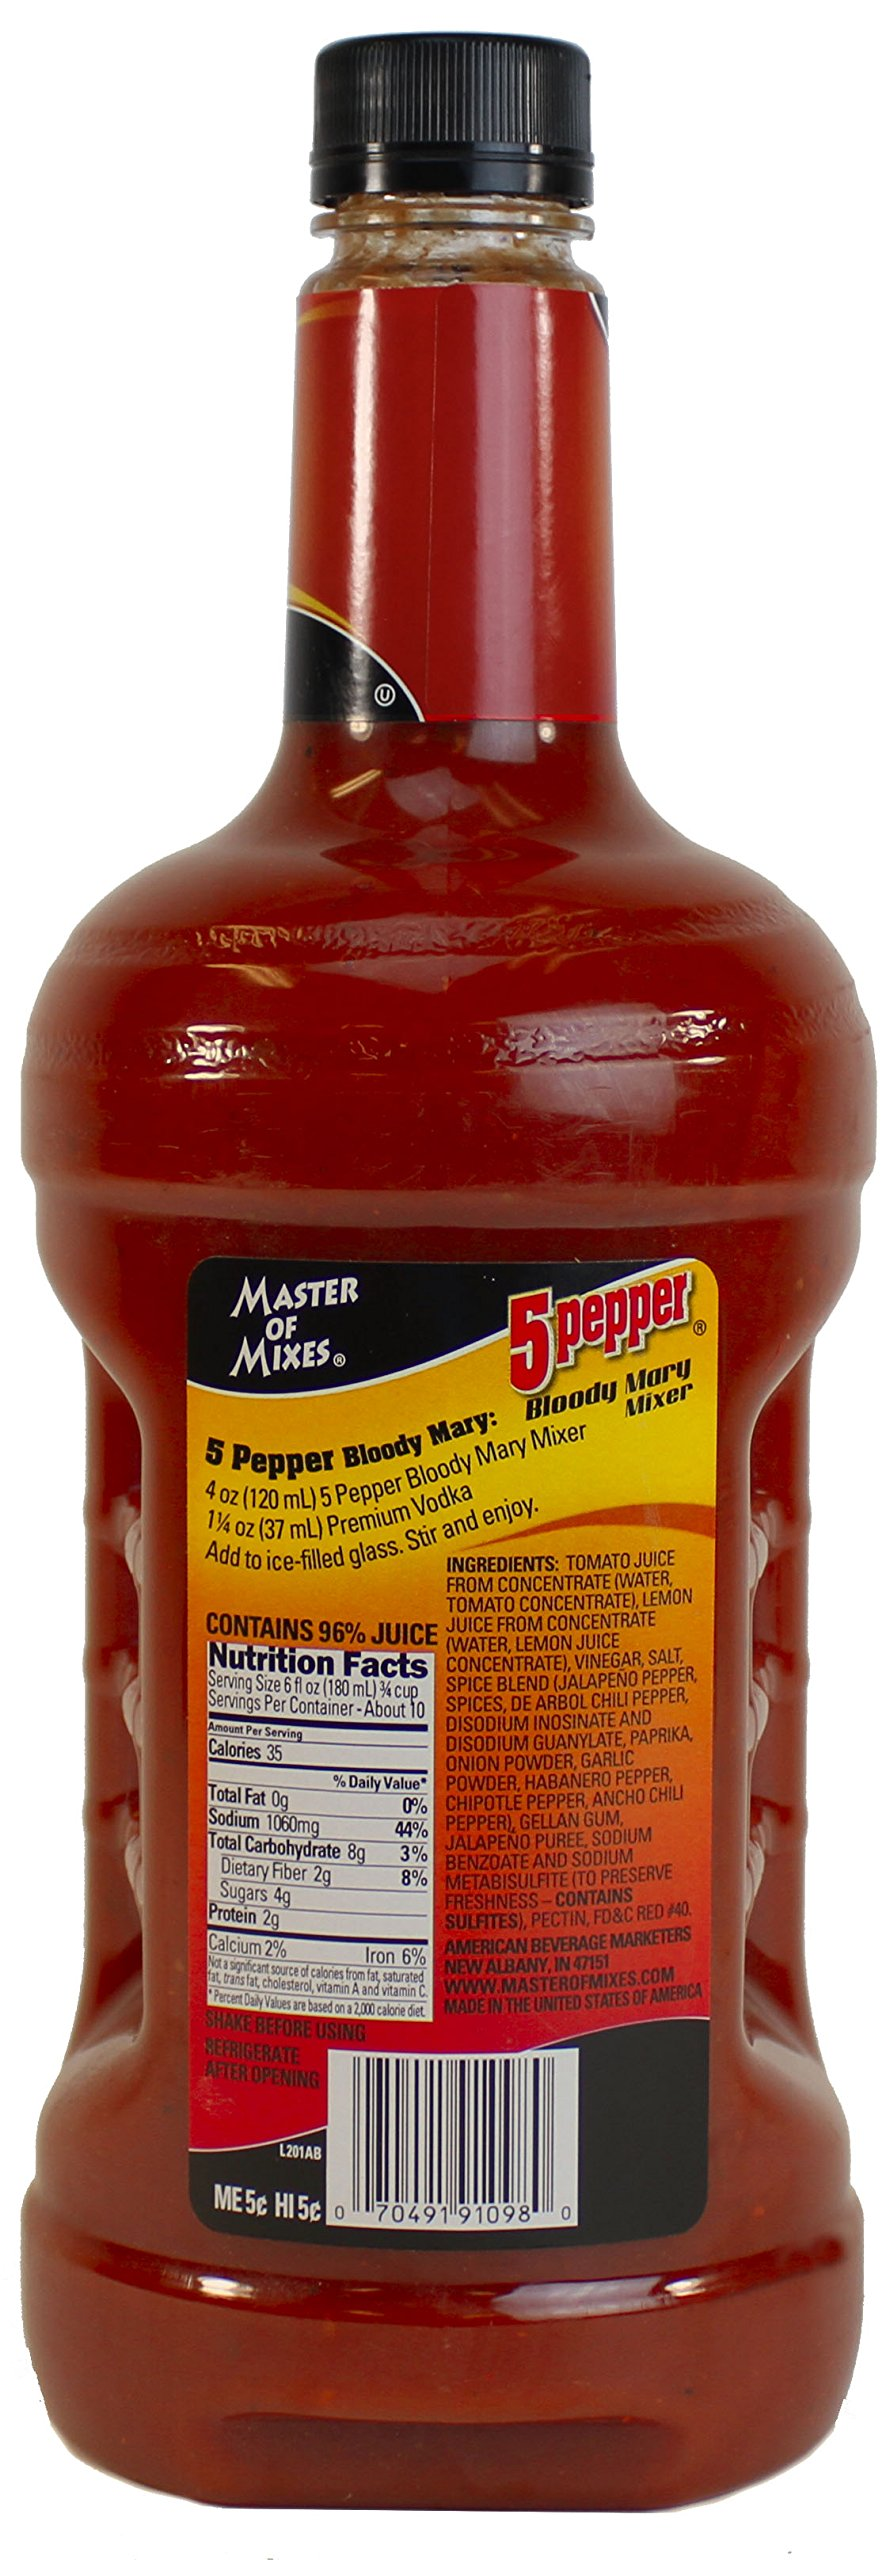 Master of Mixes 5 Pepper Extra Spicy Bloody Mary Drink Mix, Ready To Use, 1.75 Liter Bottle (59.2 Fl Oz), Pack of 3 by Master of Mixes (Image #3)